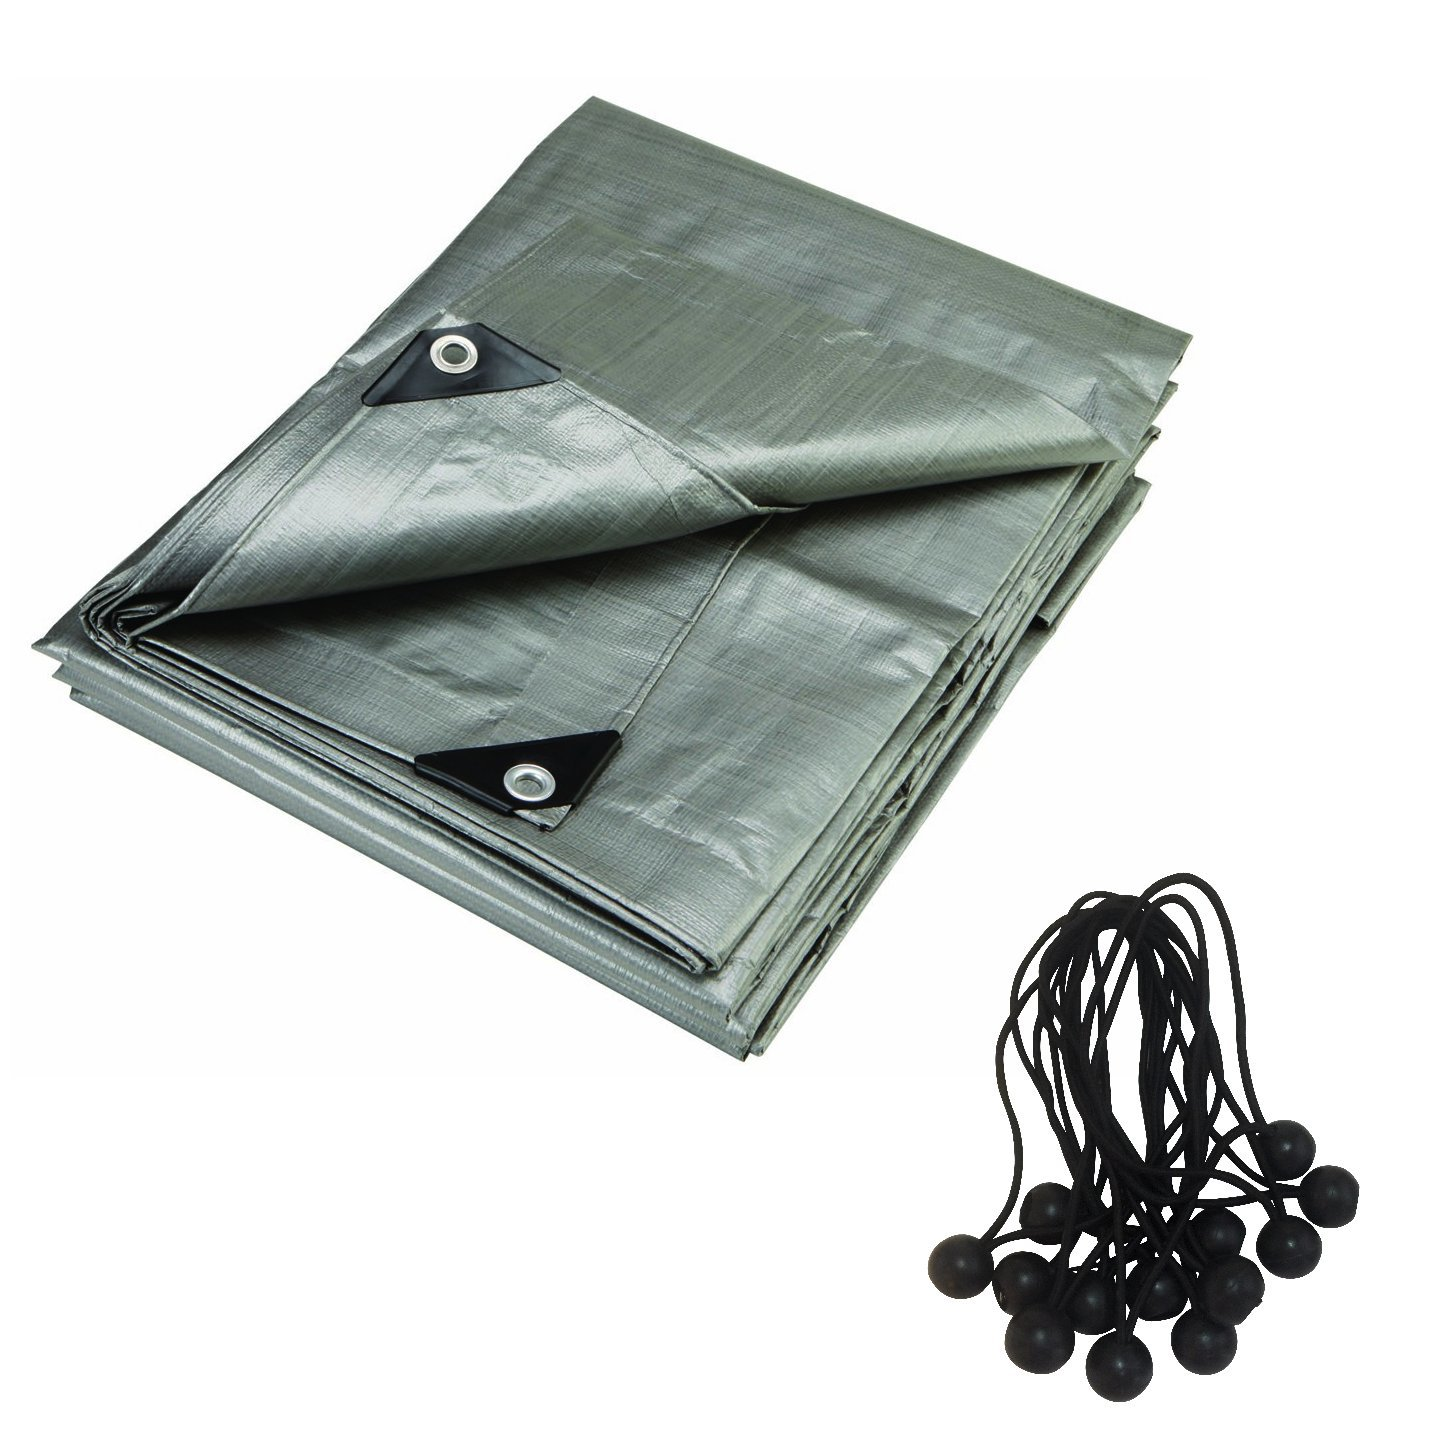 RMS 20 x 30 Foot 16 Mil Super Heavy Duty Gray Contractors Tarp with 25 Ball Bungees. 8 Oz (380GSM) Uv Protecting